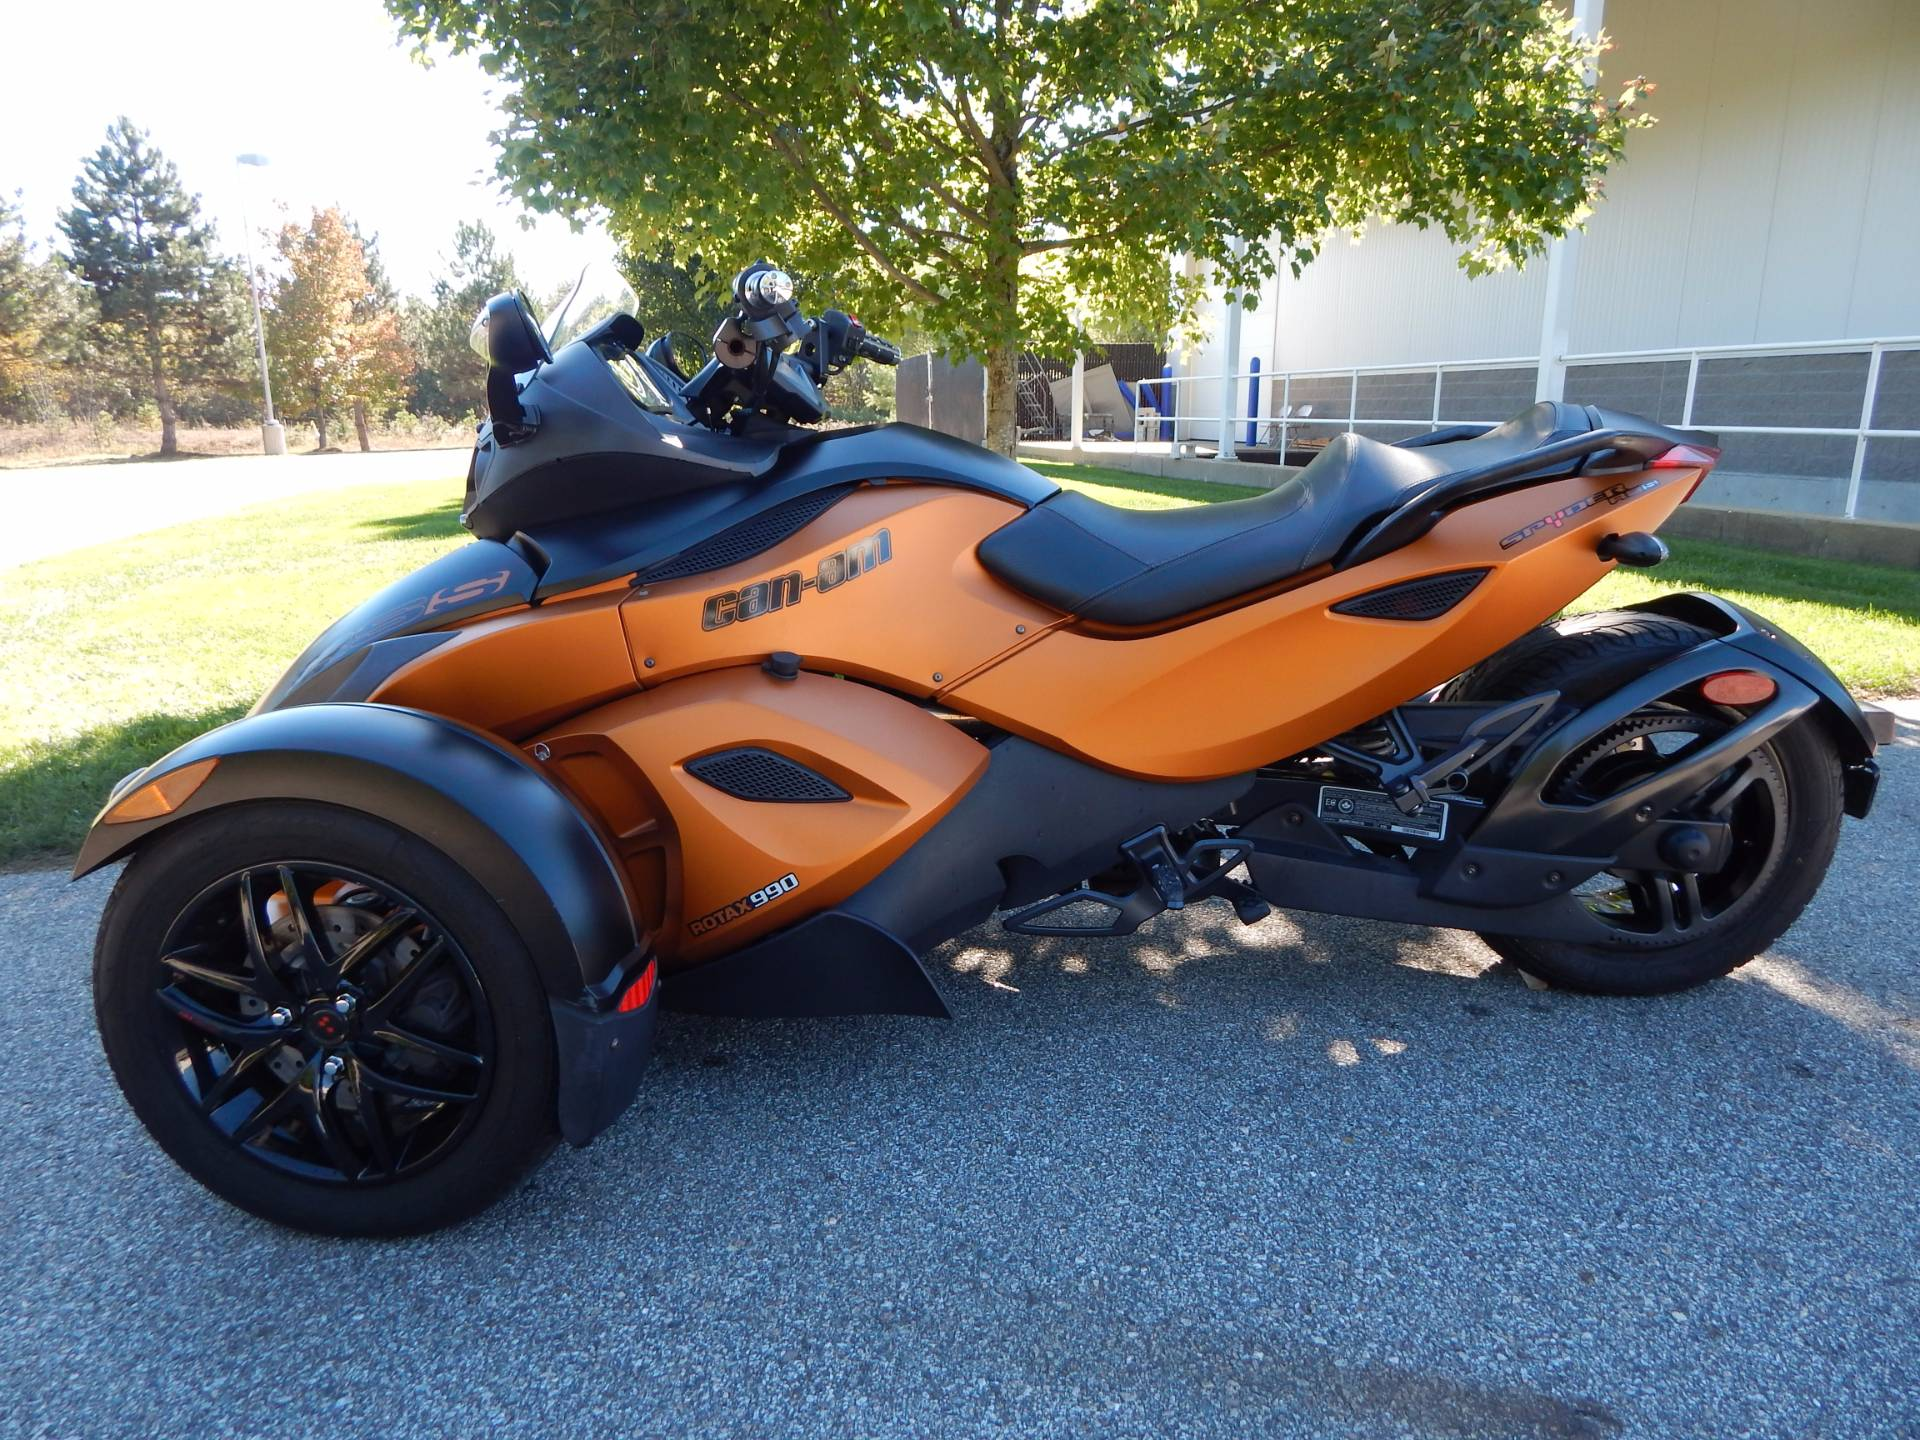 2011 can am spyder rs s se5 for sale concord nh 81004. Black Bedroom Furniture Sets. Home Design Ideas